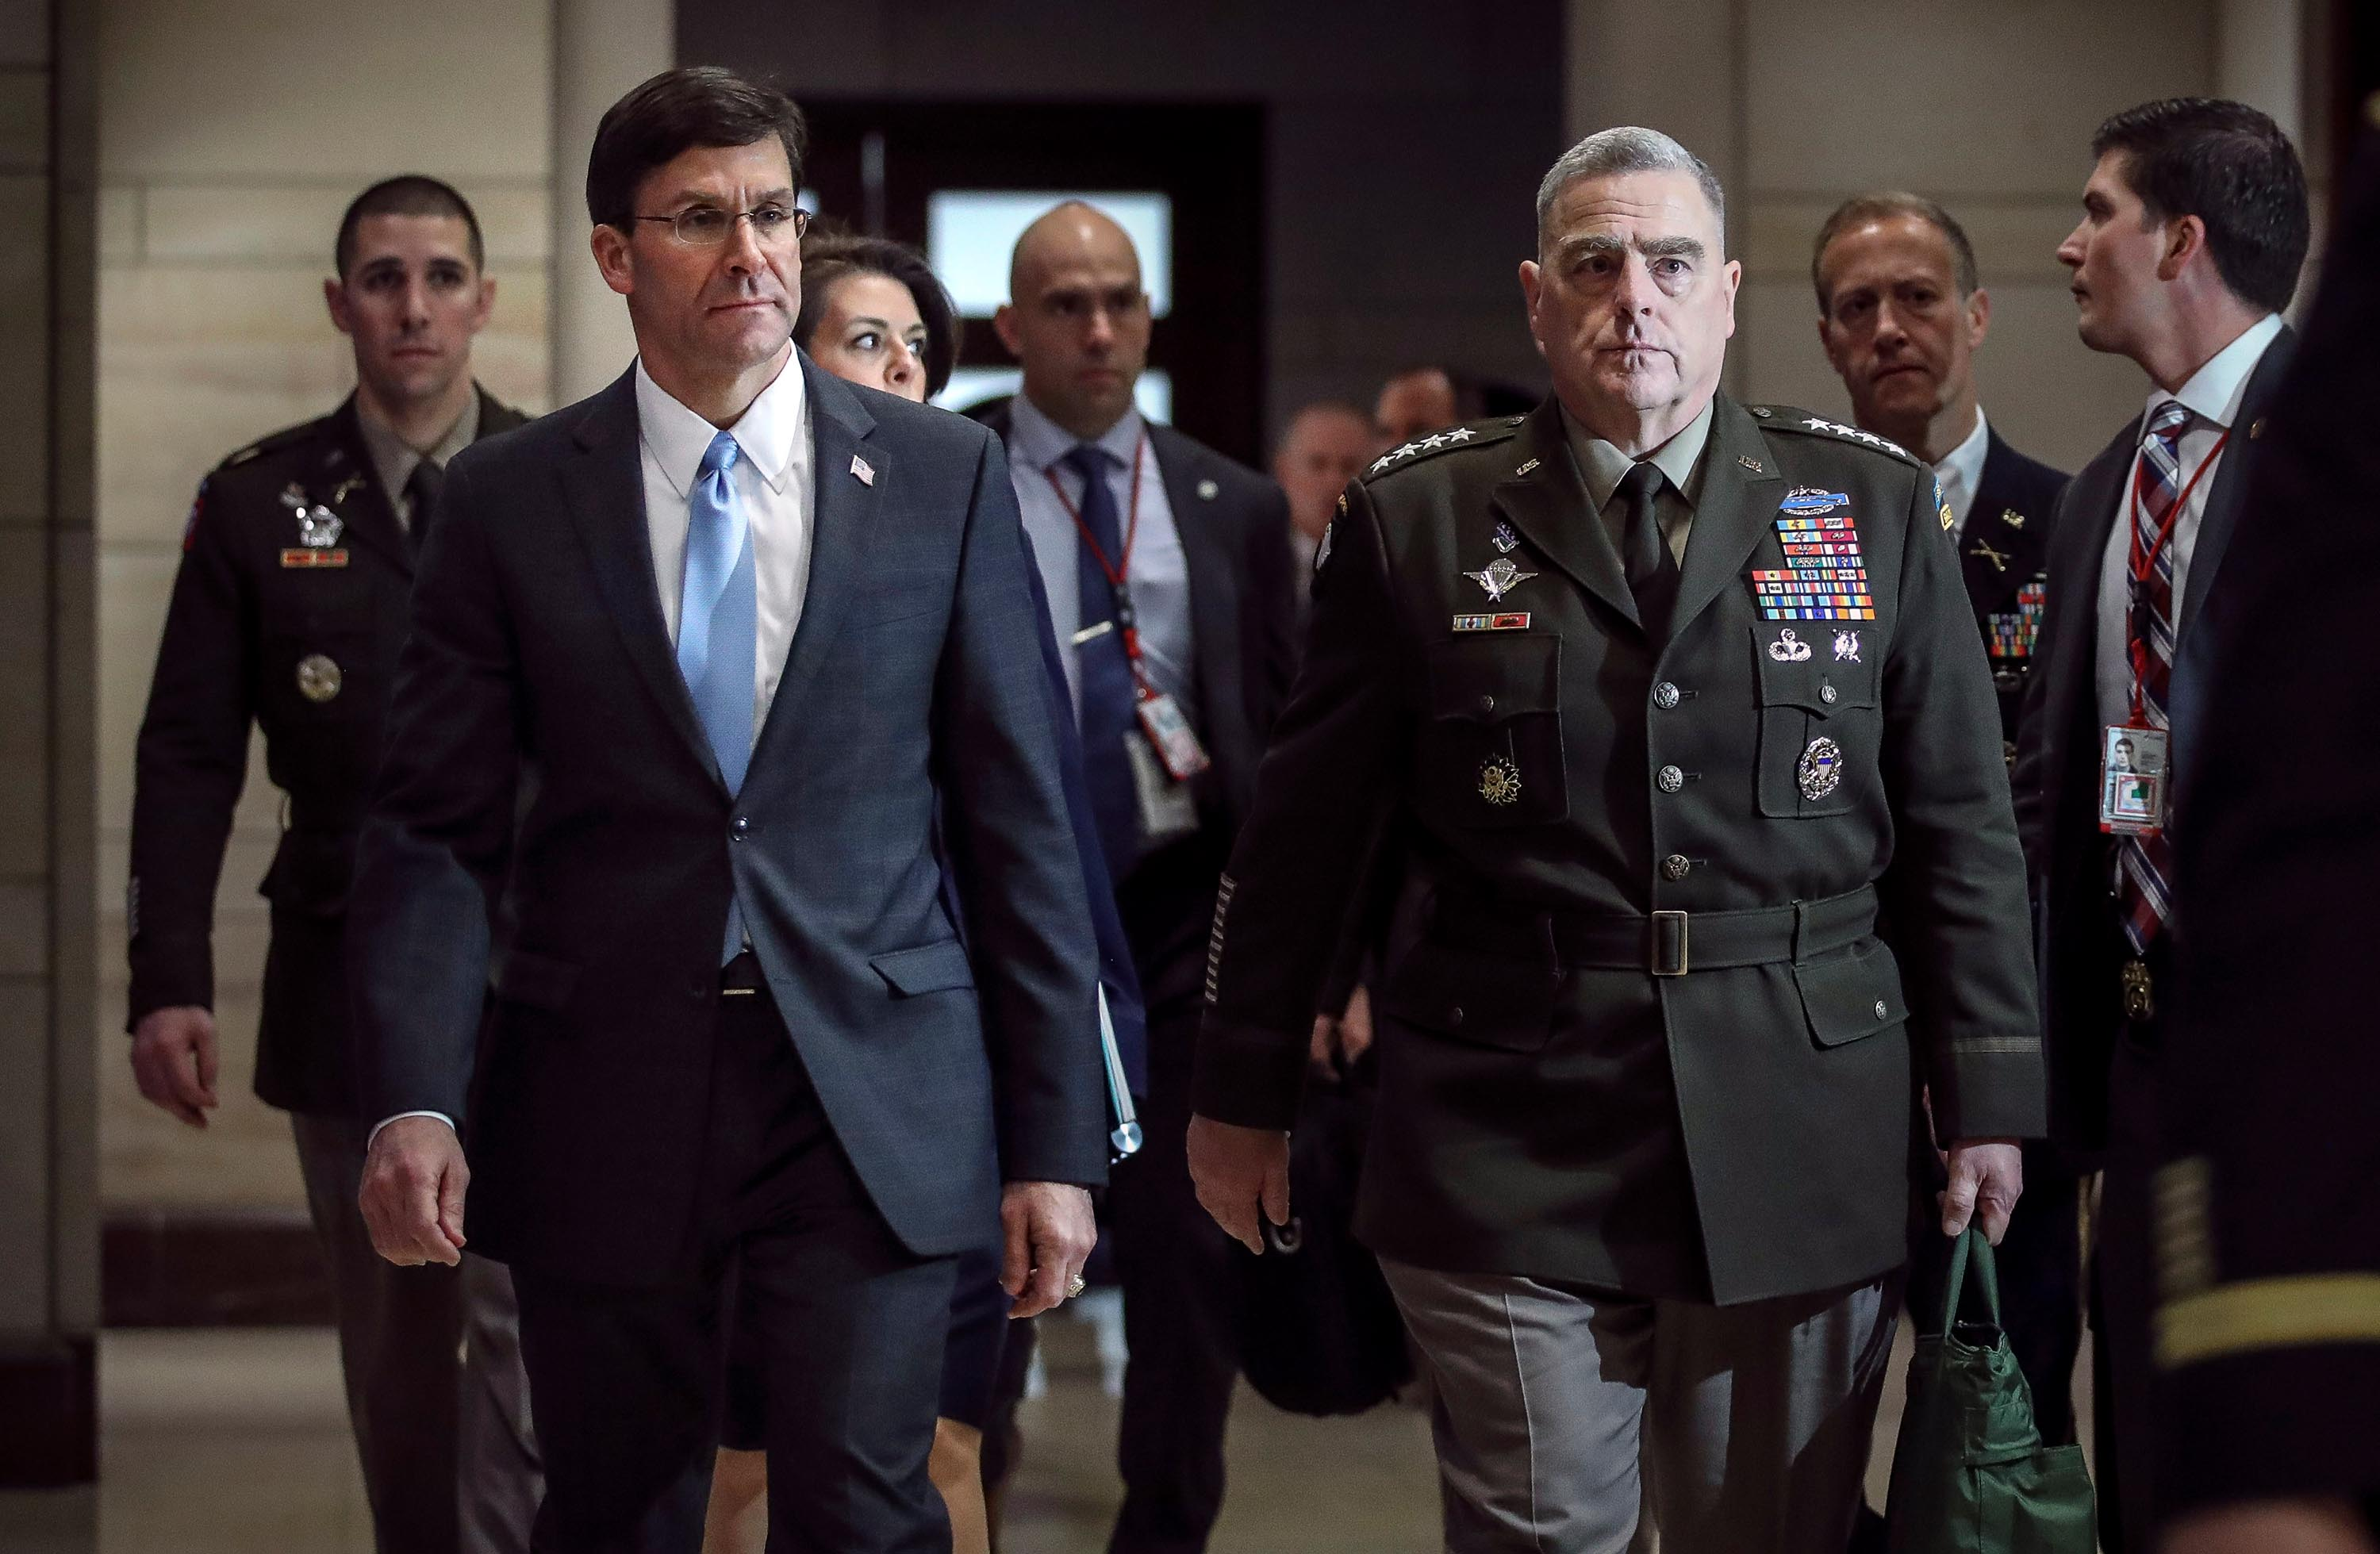 Esper and Milley refuse to testify about military's role in policing protests, source says